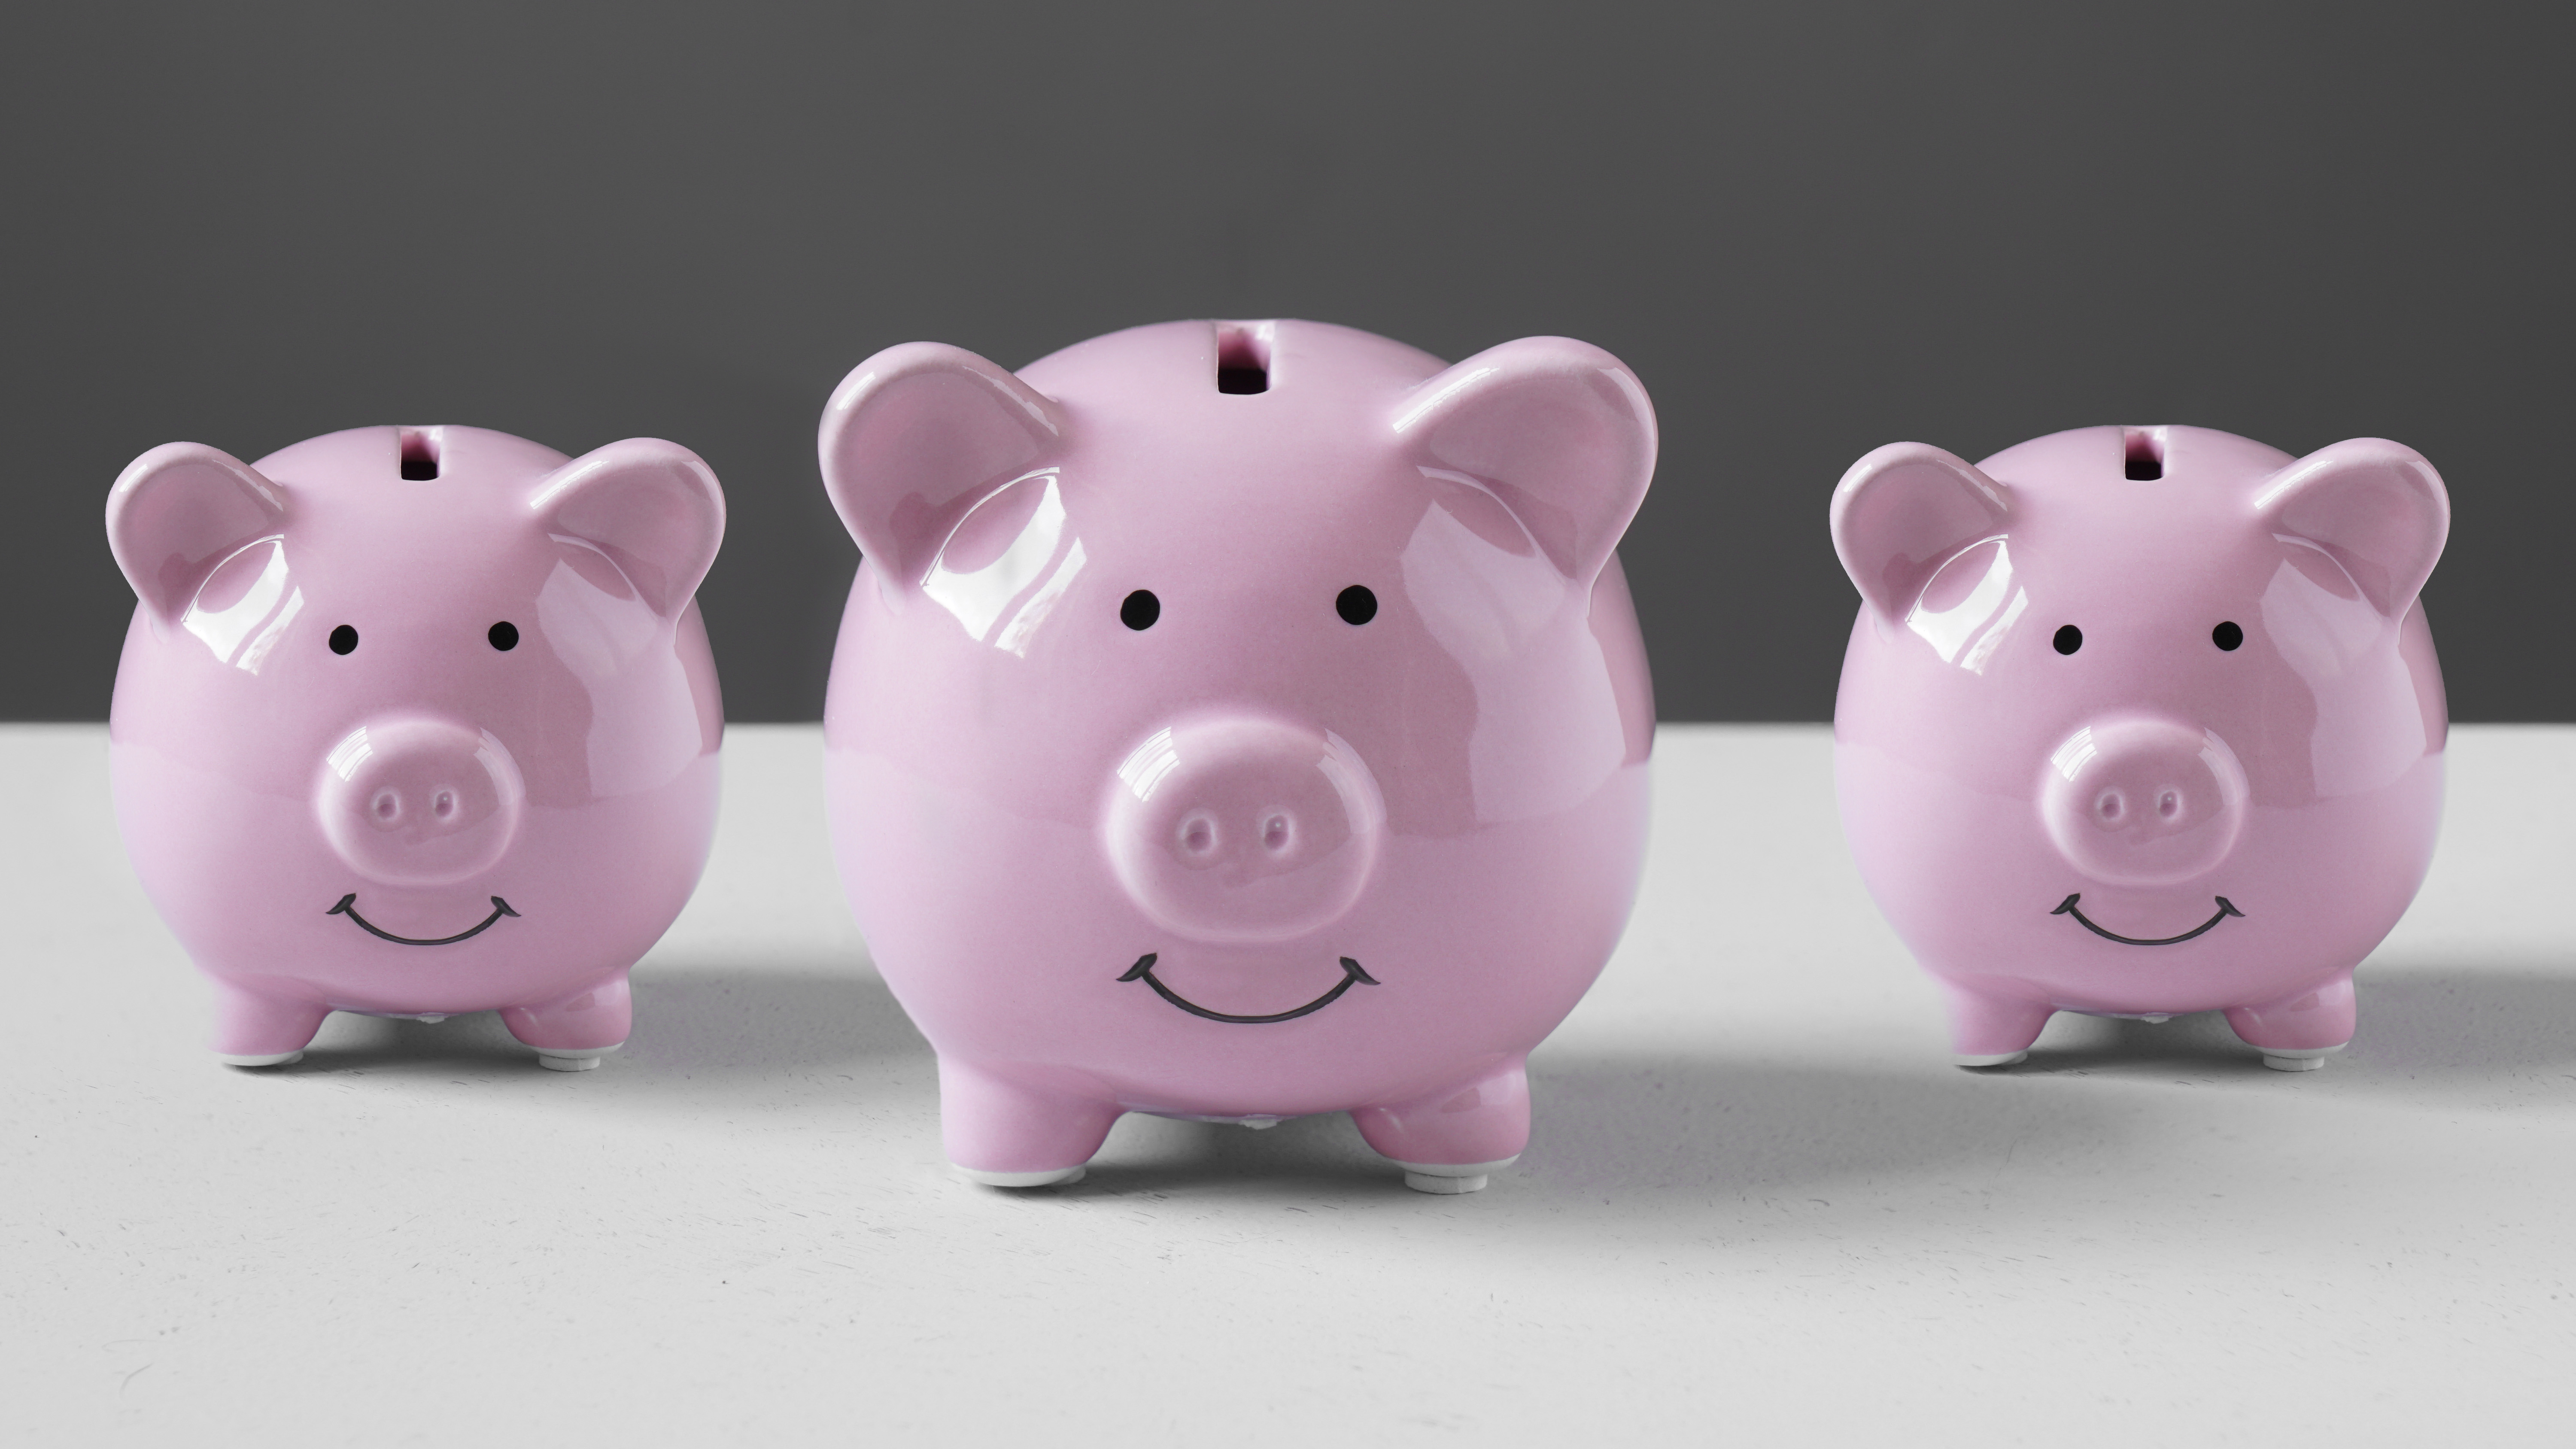 Finding the Right Savings Account For You